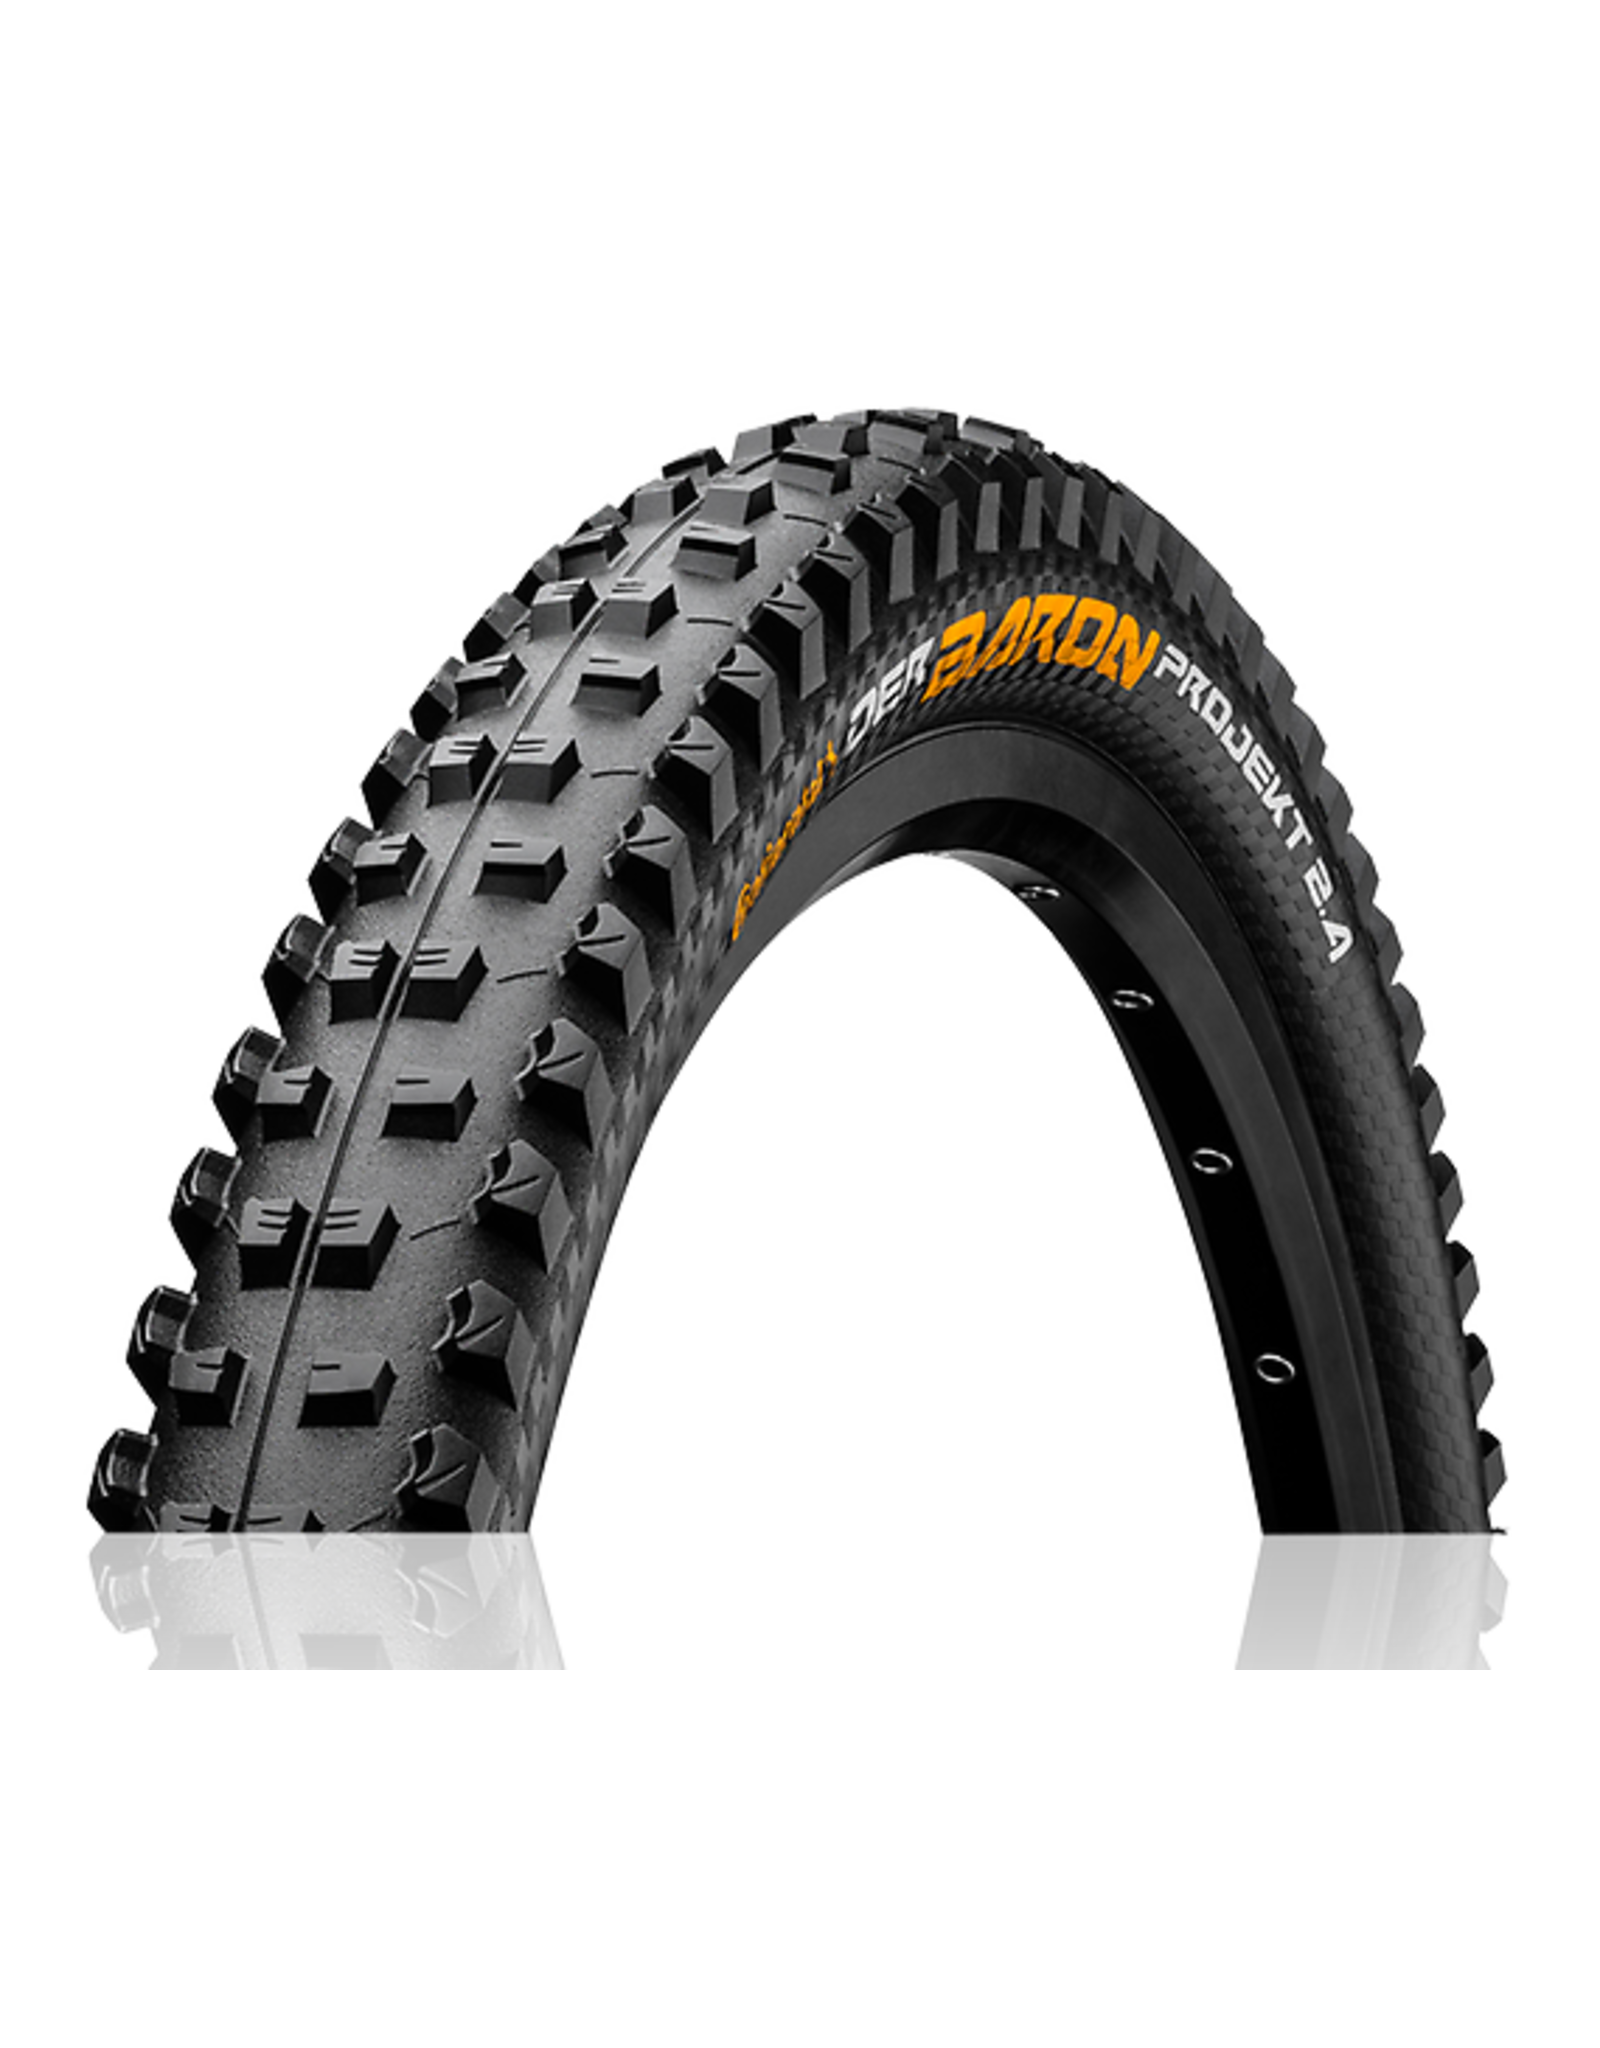 Continental Continental - DH/All Mountain Tires Der Baron Projekt 26 x 2.4 Folding ProTection APEX